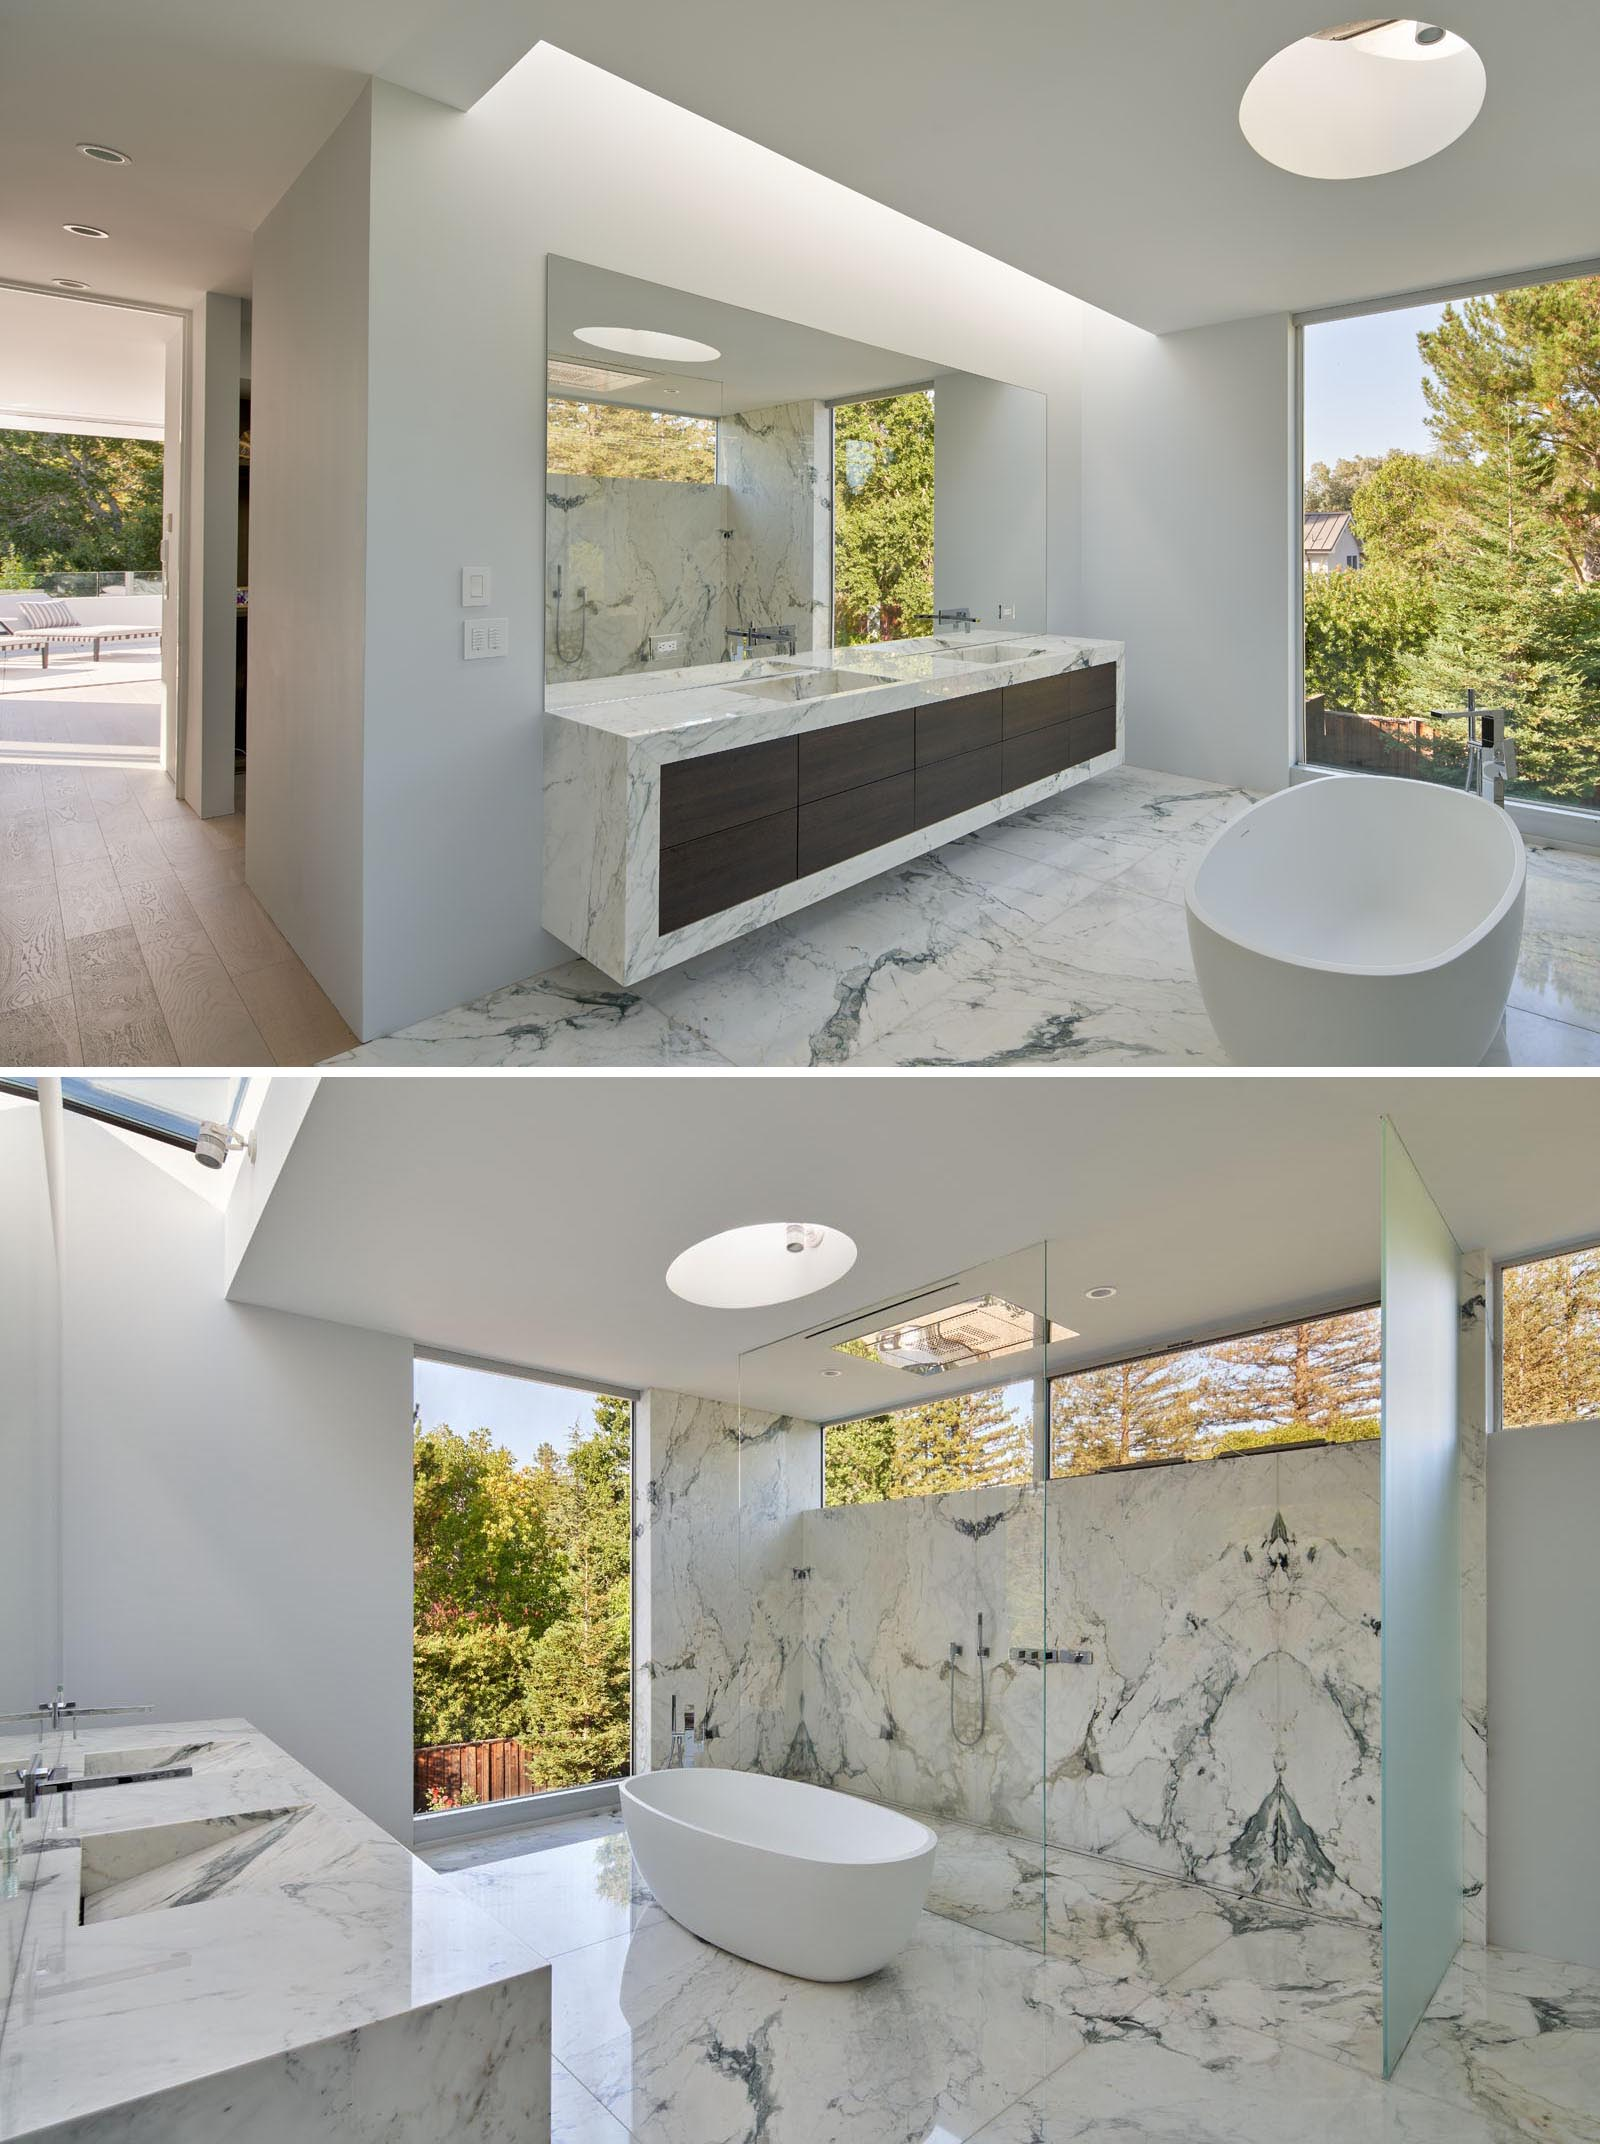 In the master bathroom, there's a double vanity, a freestanding bathtub, and a large walk-in shower.